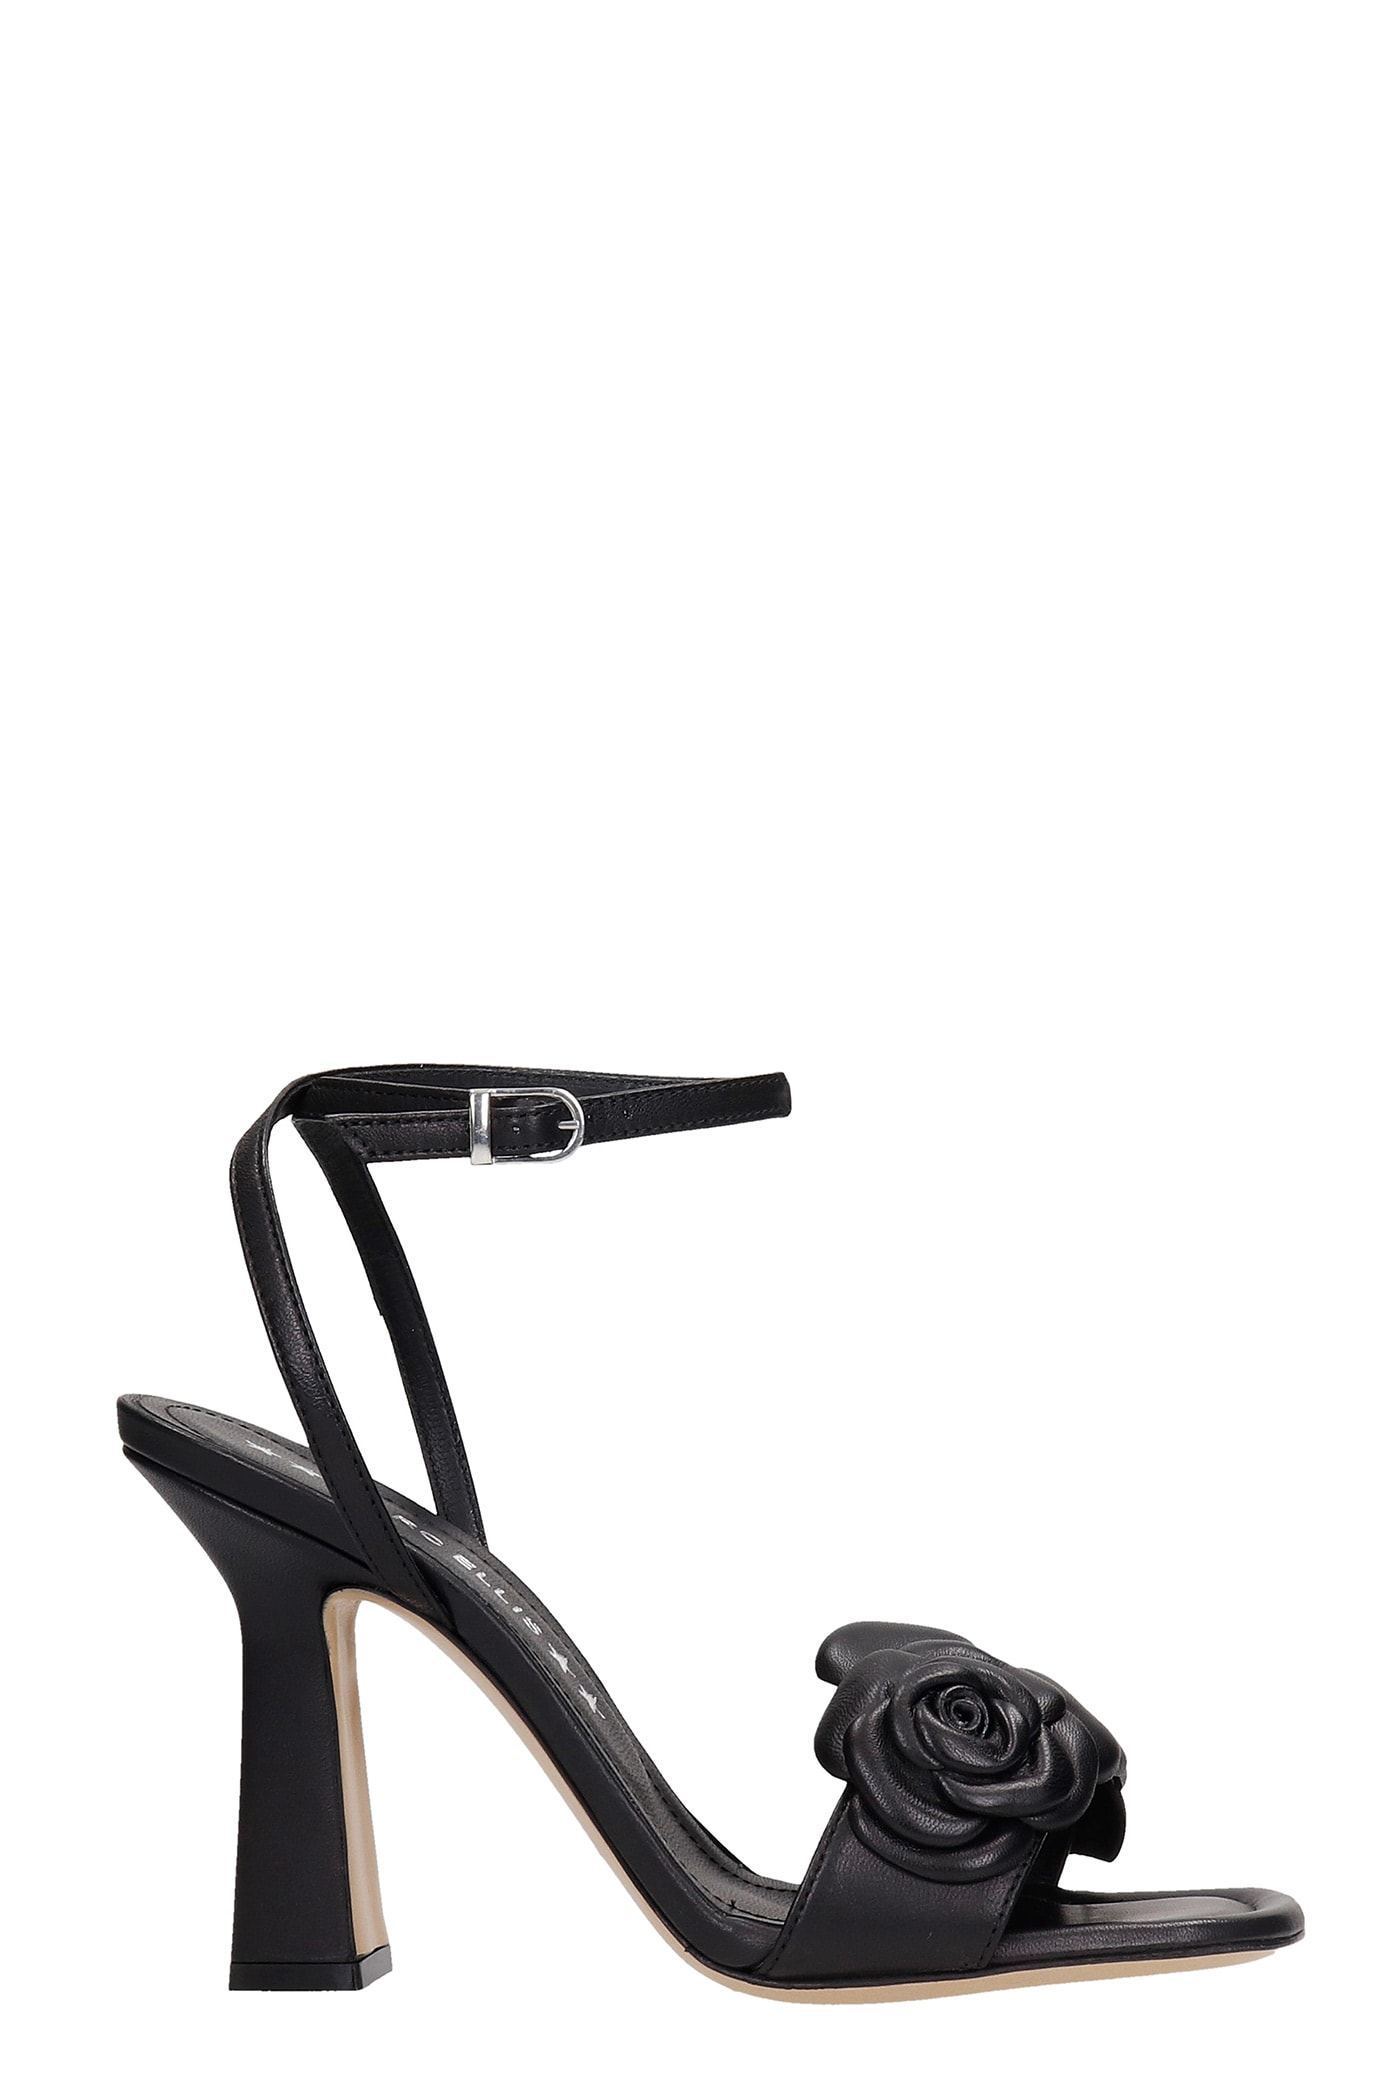 Emily Sandals In Black Leather